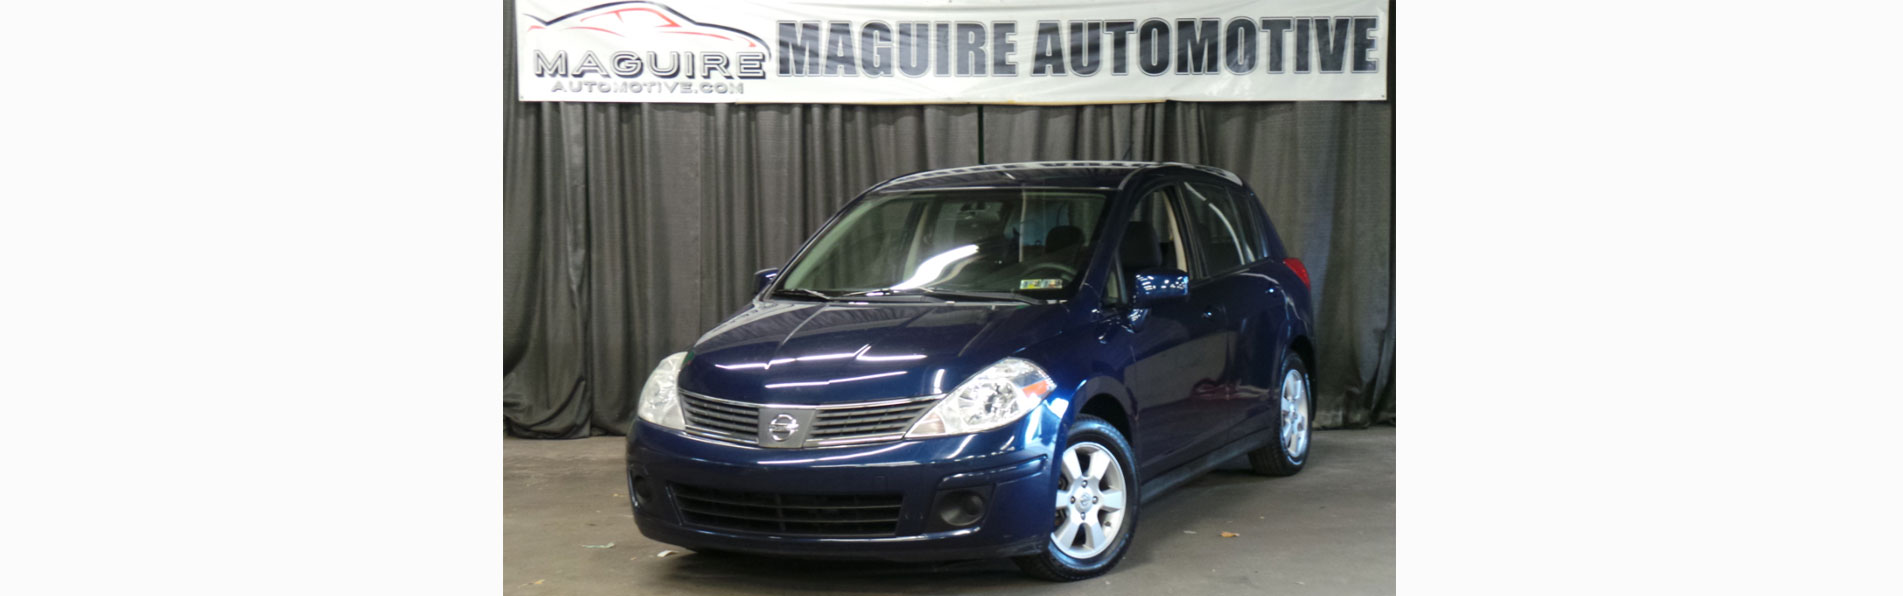 Used cars for sale in Glenolden | Maguire Automotive. Glenolden PA